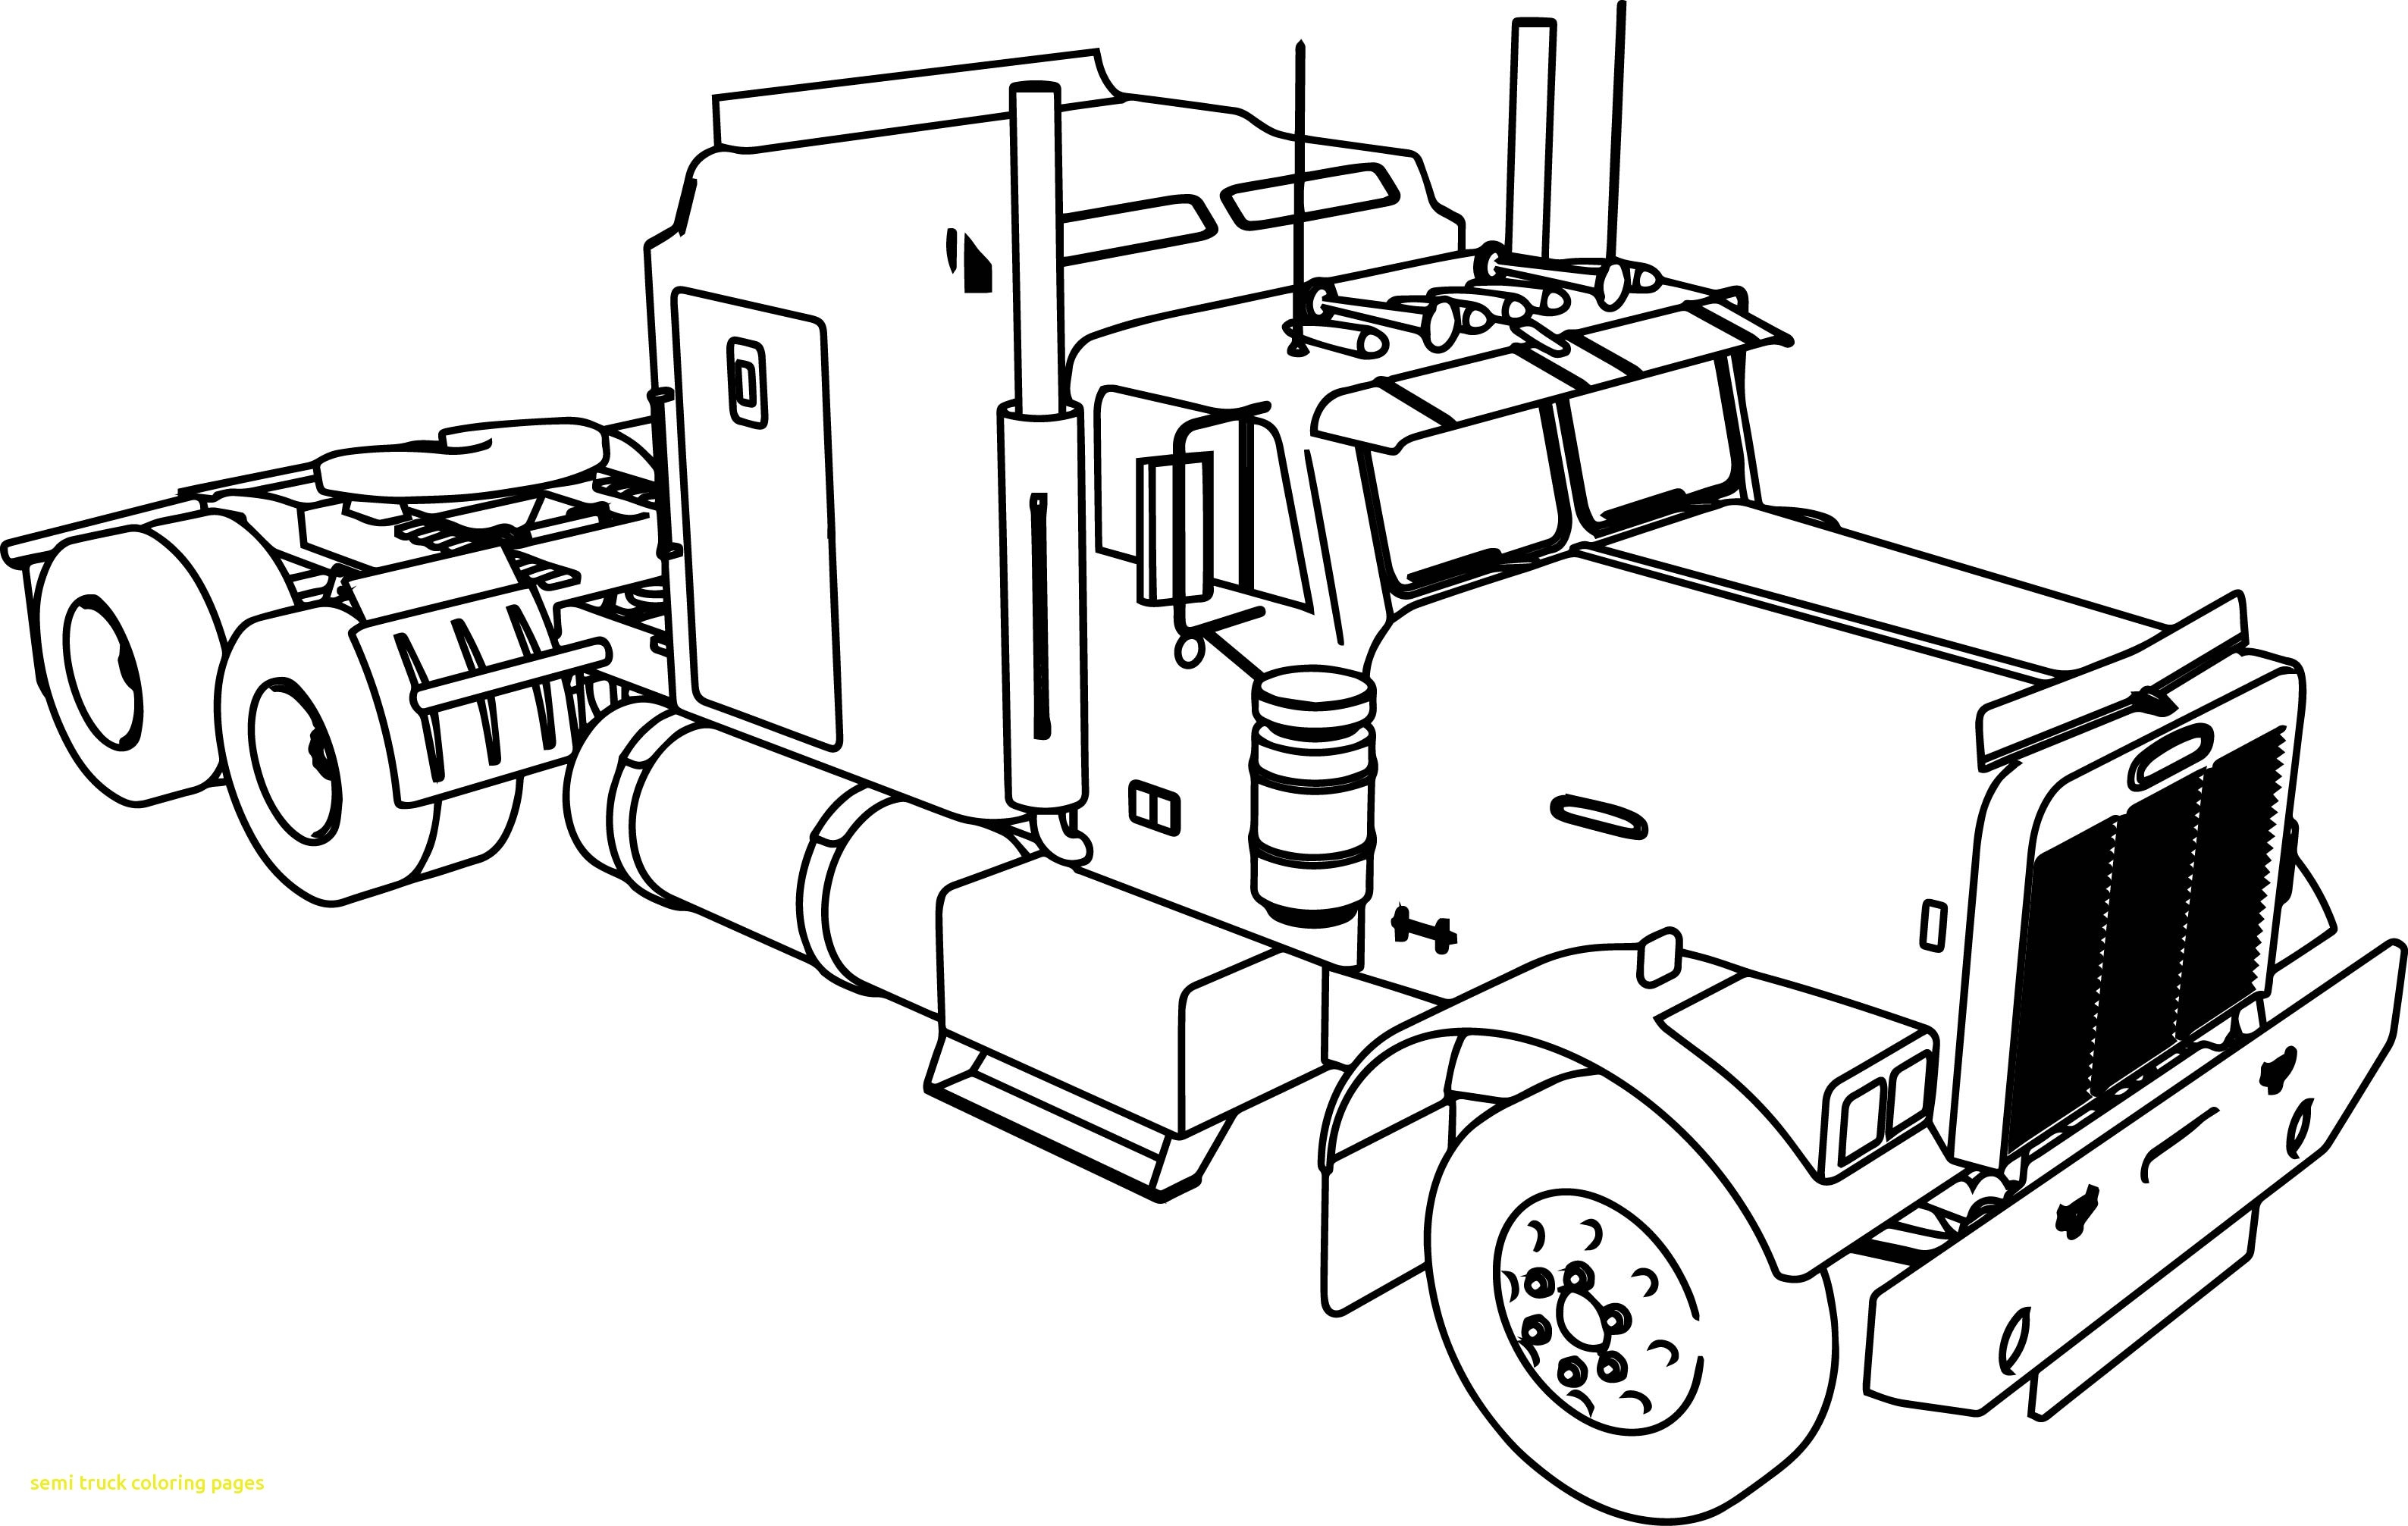 Mack Truck Coloring Pages at GetDrawings com | Free for